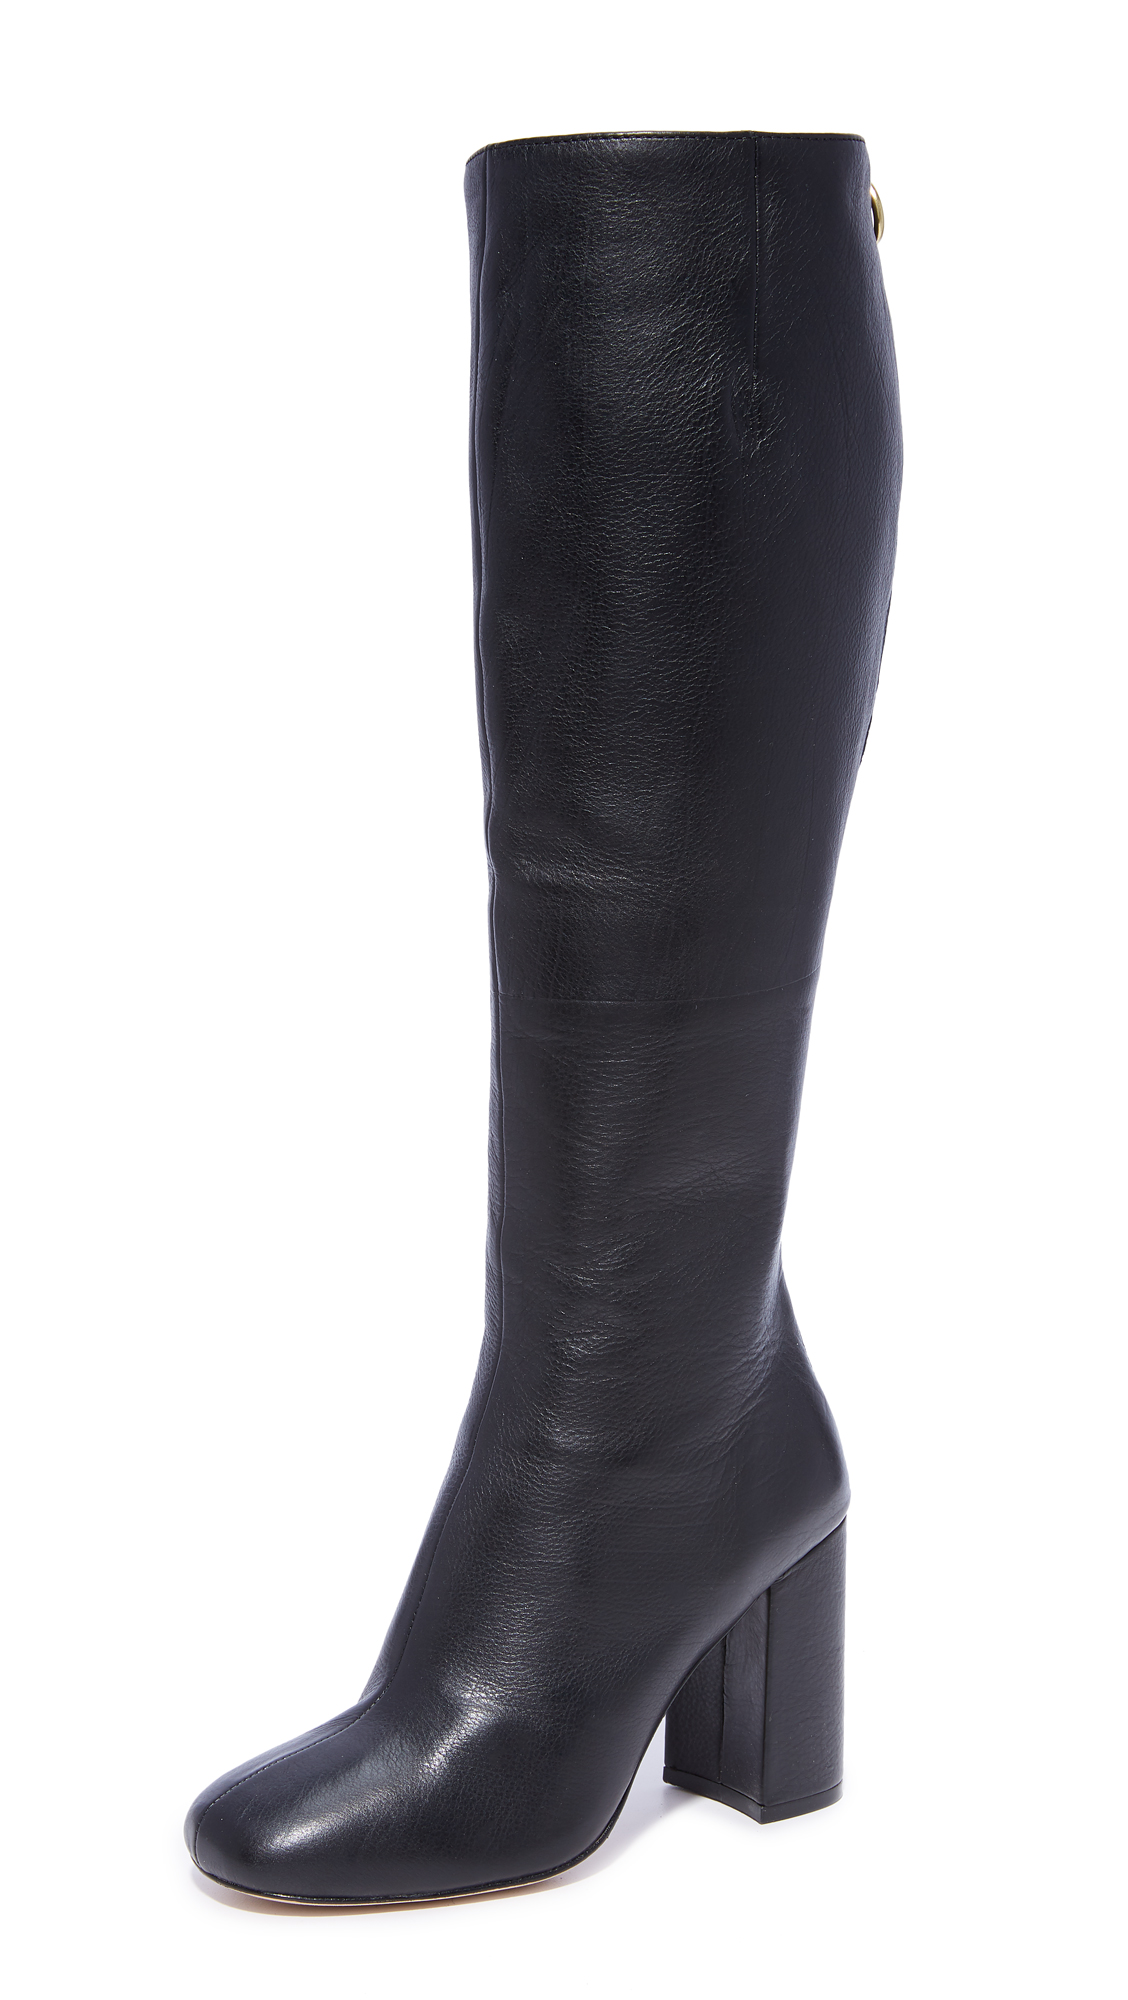 Joie Saima Tall Boots - Black